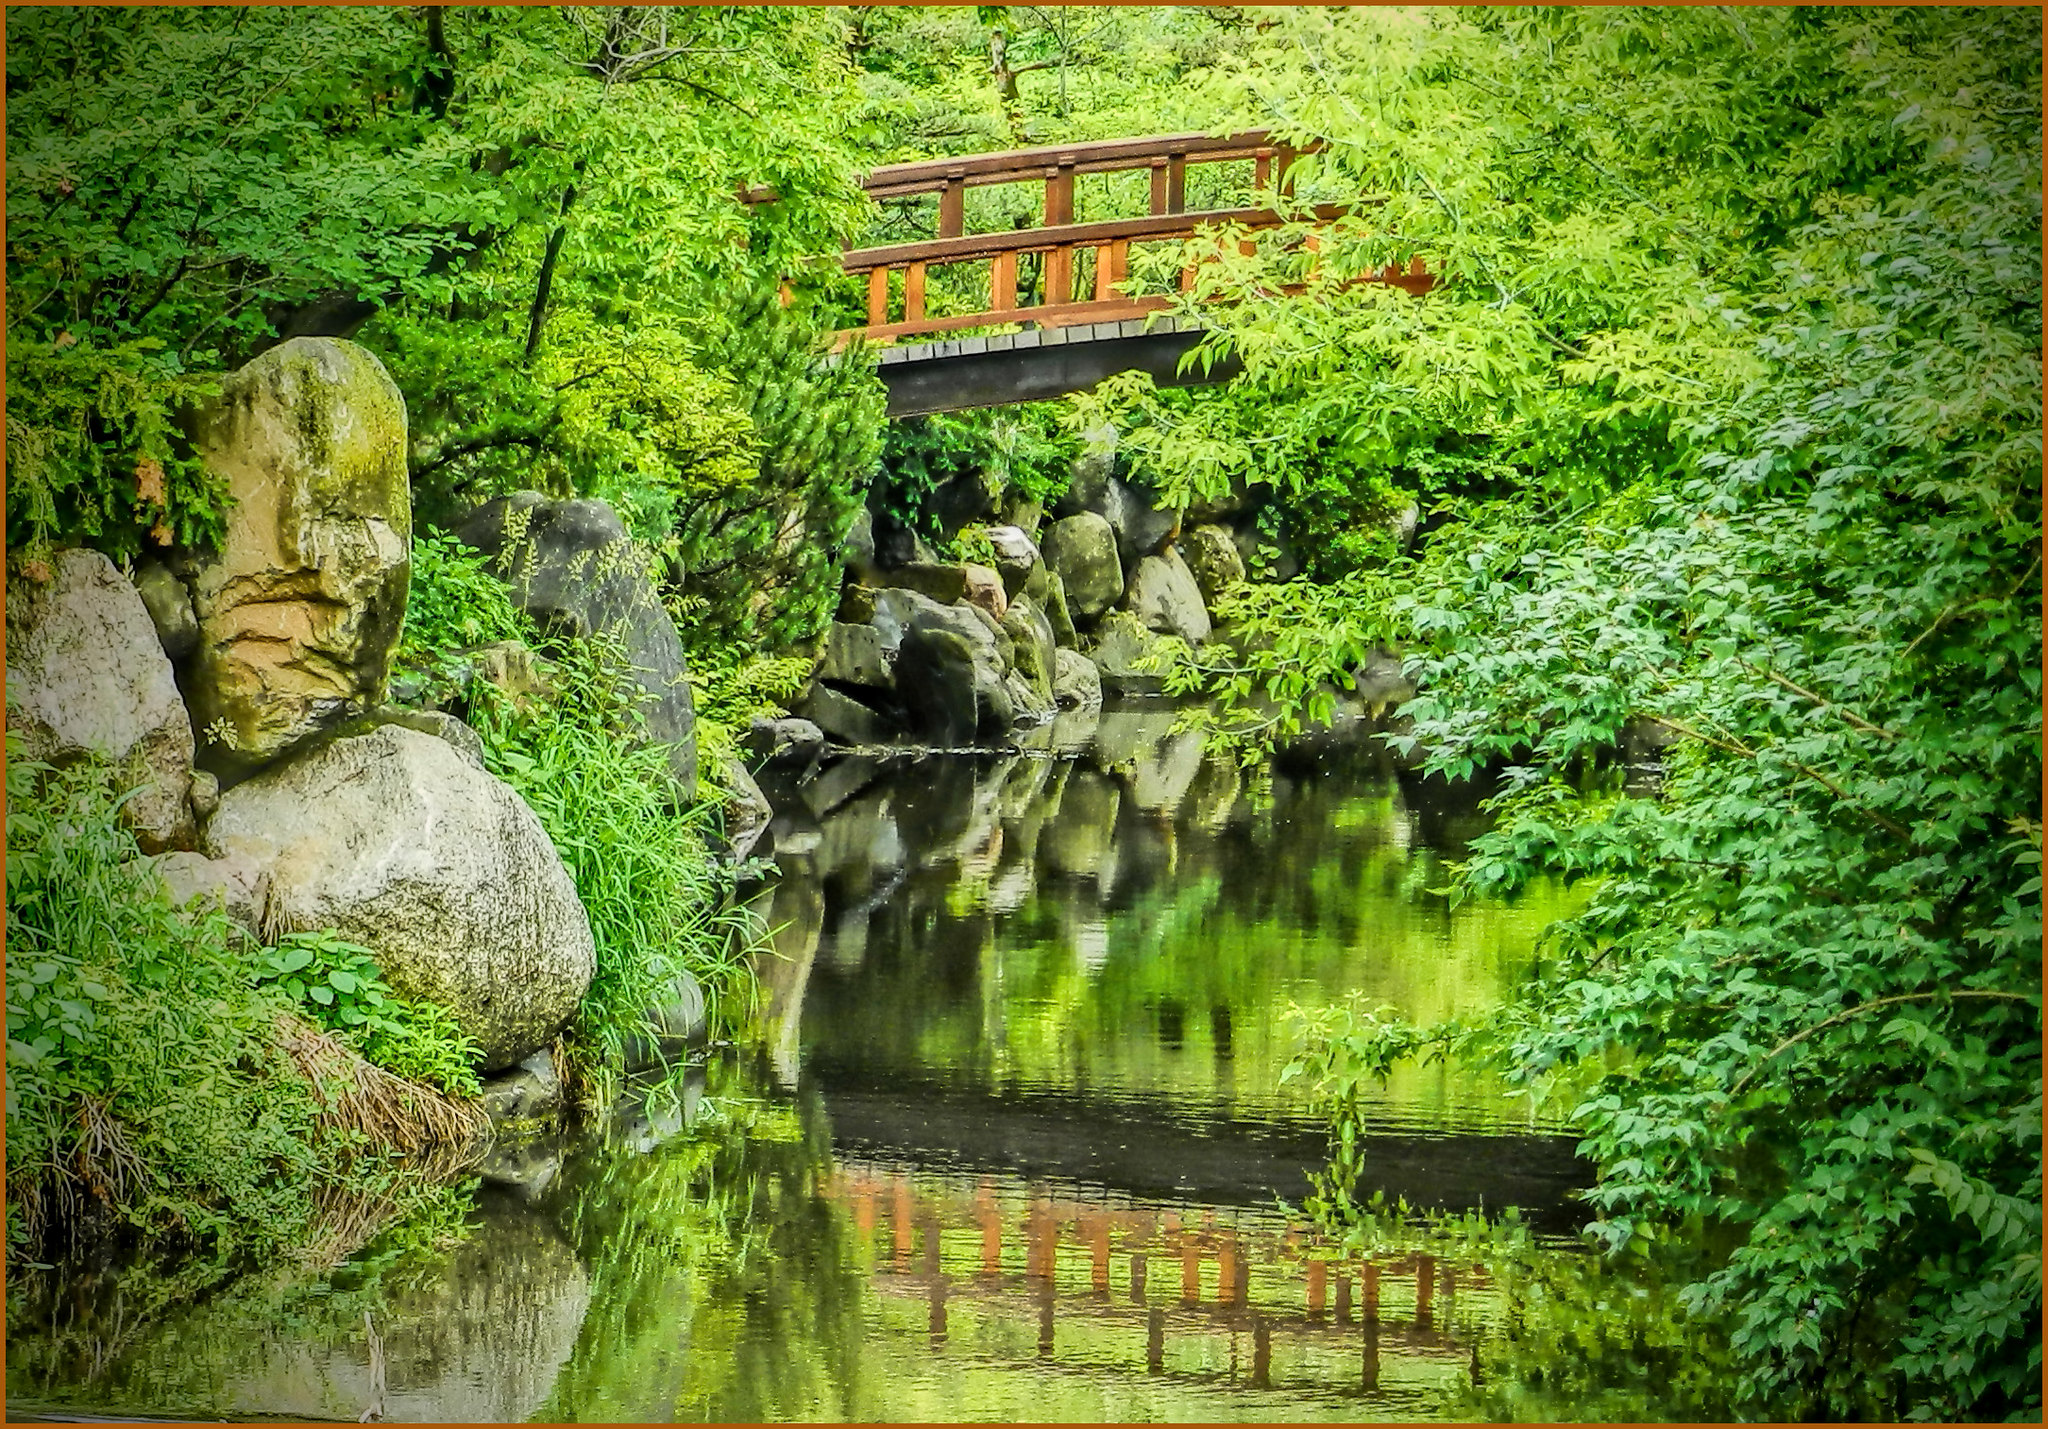 Anderson japanese gardens rockford ill flickr photo - Anderson japanese gardens rockford illinois ...